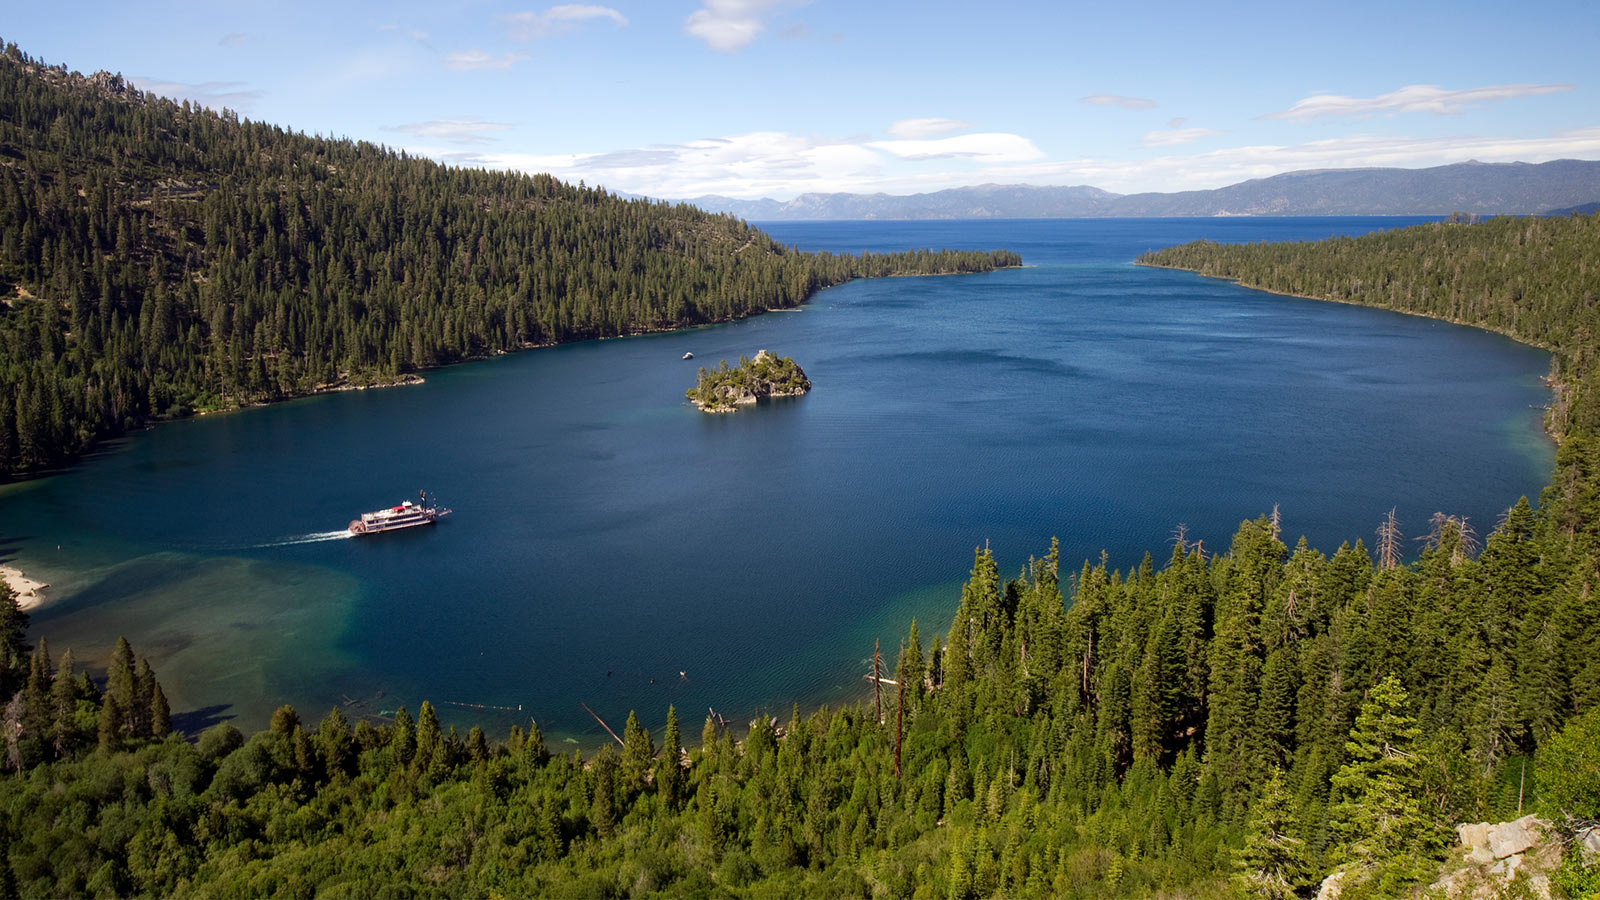 Lake Tahoe Cruises aboard the M.S. Dixie II